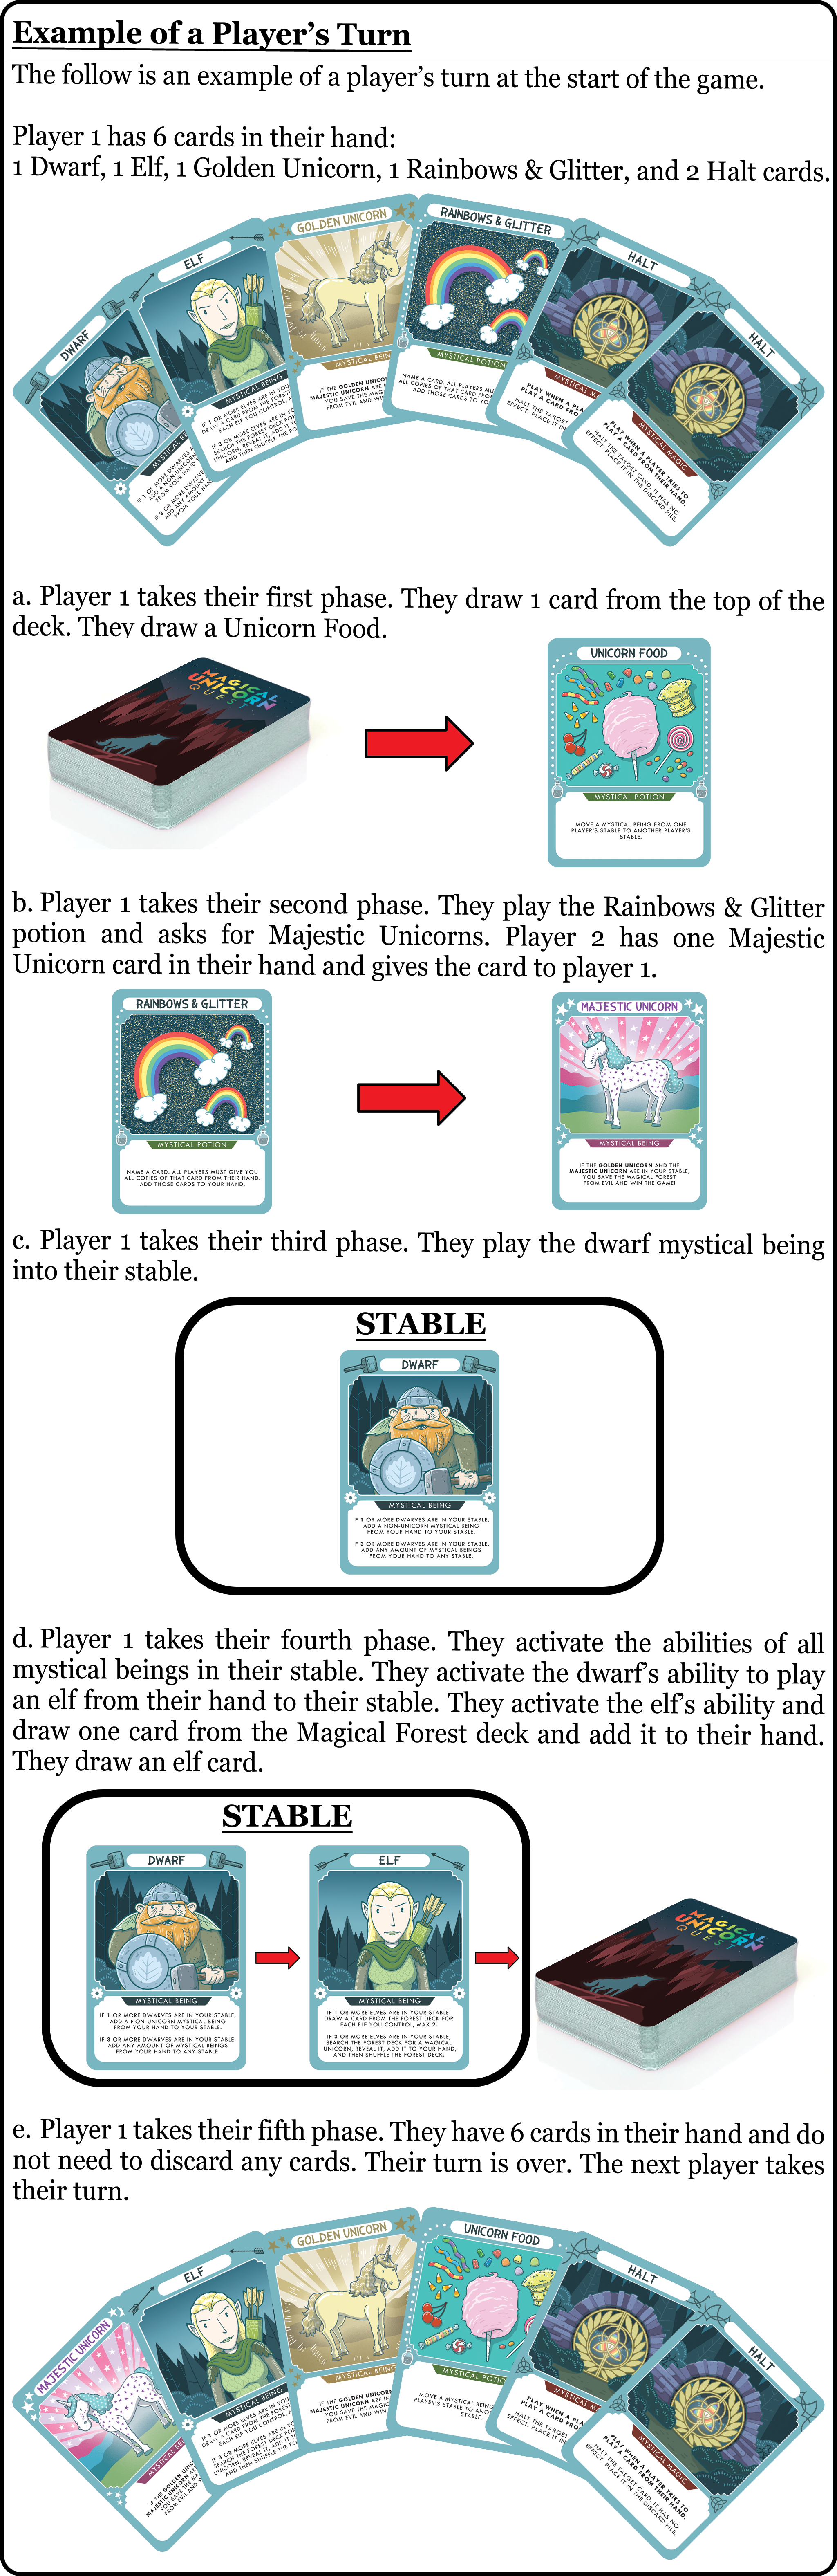 Magical Unicorn Quest is a family friendly strategy and party card game / board game. This section provides an example of a players turn. Game designer is Andrew Kuplic, artist is Kip Noschese, publisher is Flame Point Games, and manufacture is LongPack Games. In the game the Magical Forest is haunted by foul mystical beings. Players are trying to unite the Golden Unicorn and Majestic Unicorn in their stable to rid the forest of evil. The first player to do so wins the game.